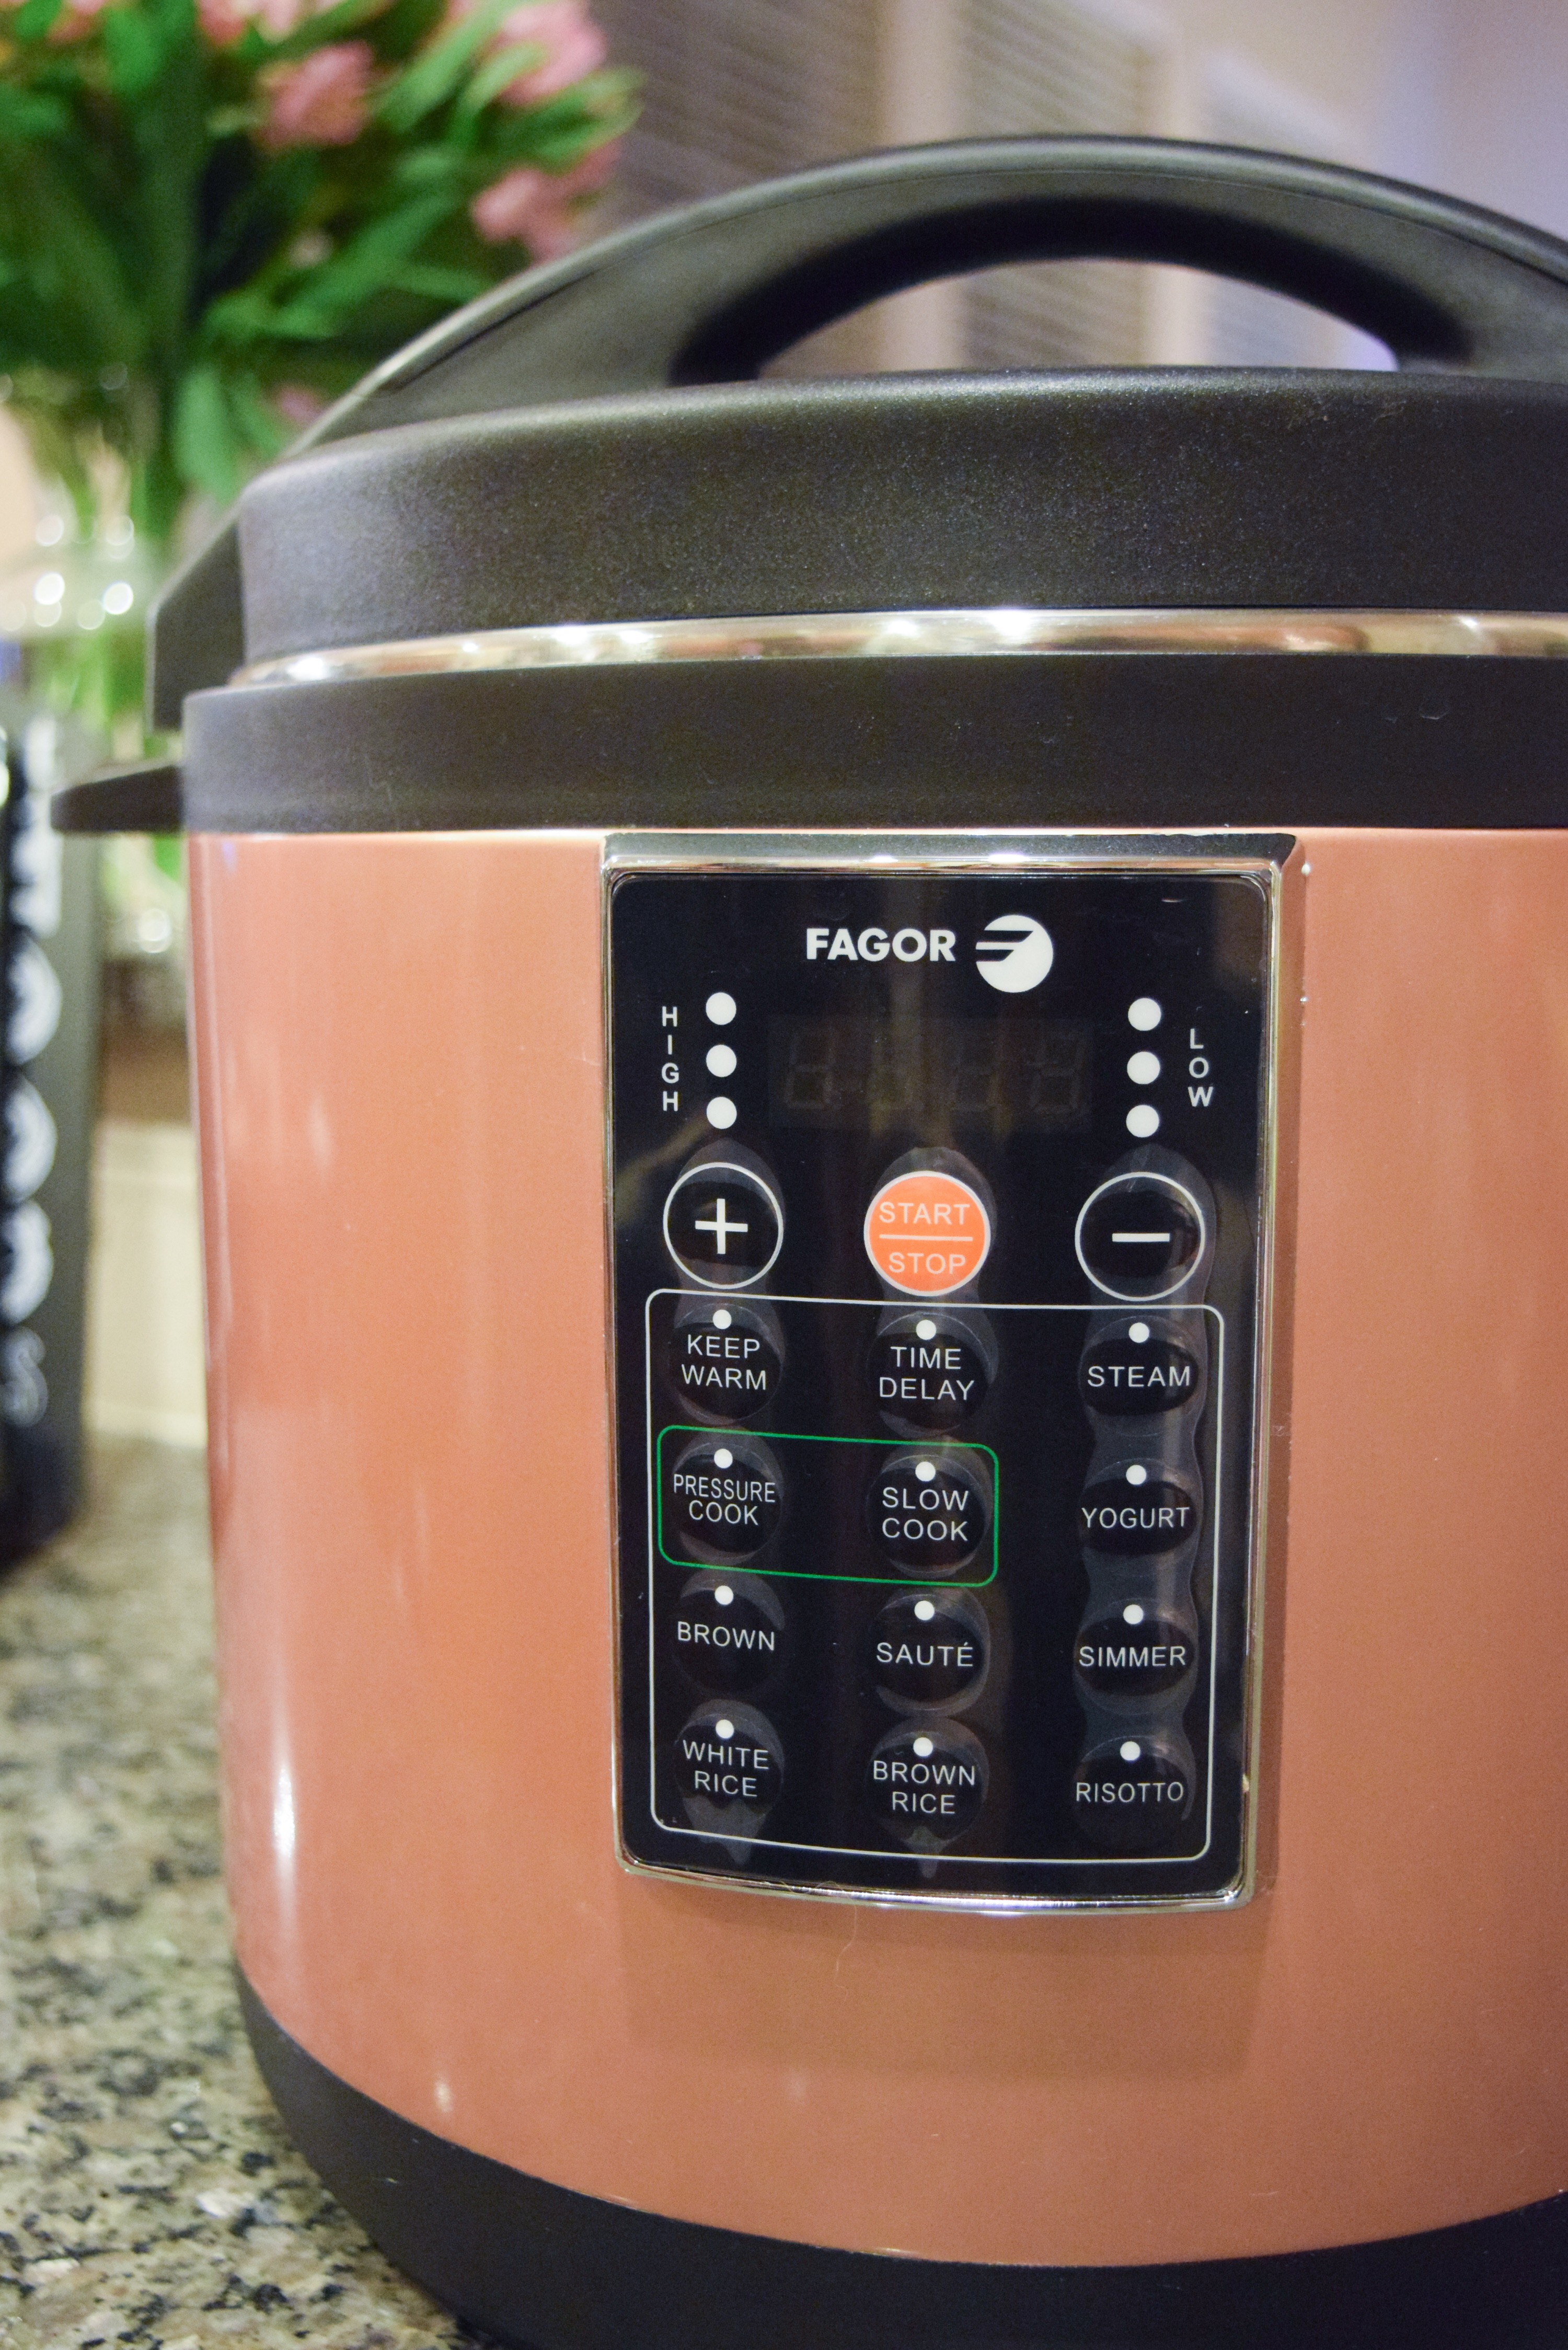 The Kitchen Appliance I Gave Up My Slow Cooker For - A Simplified Life